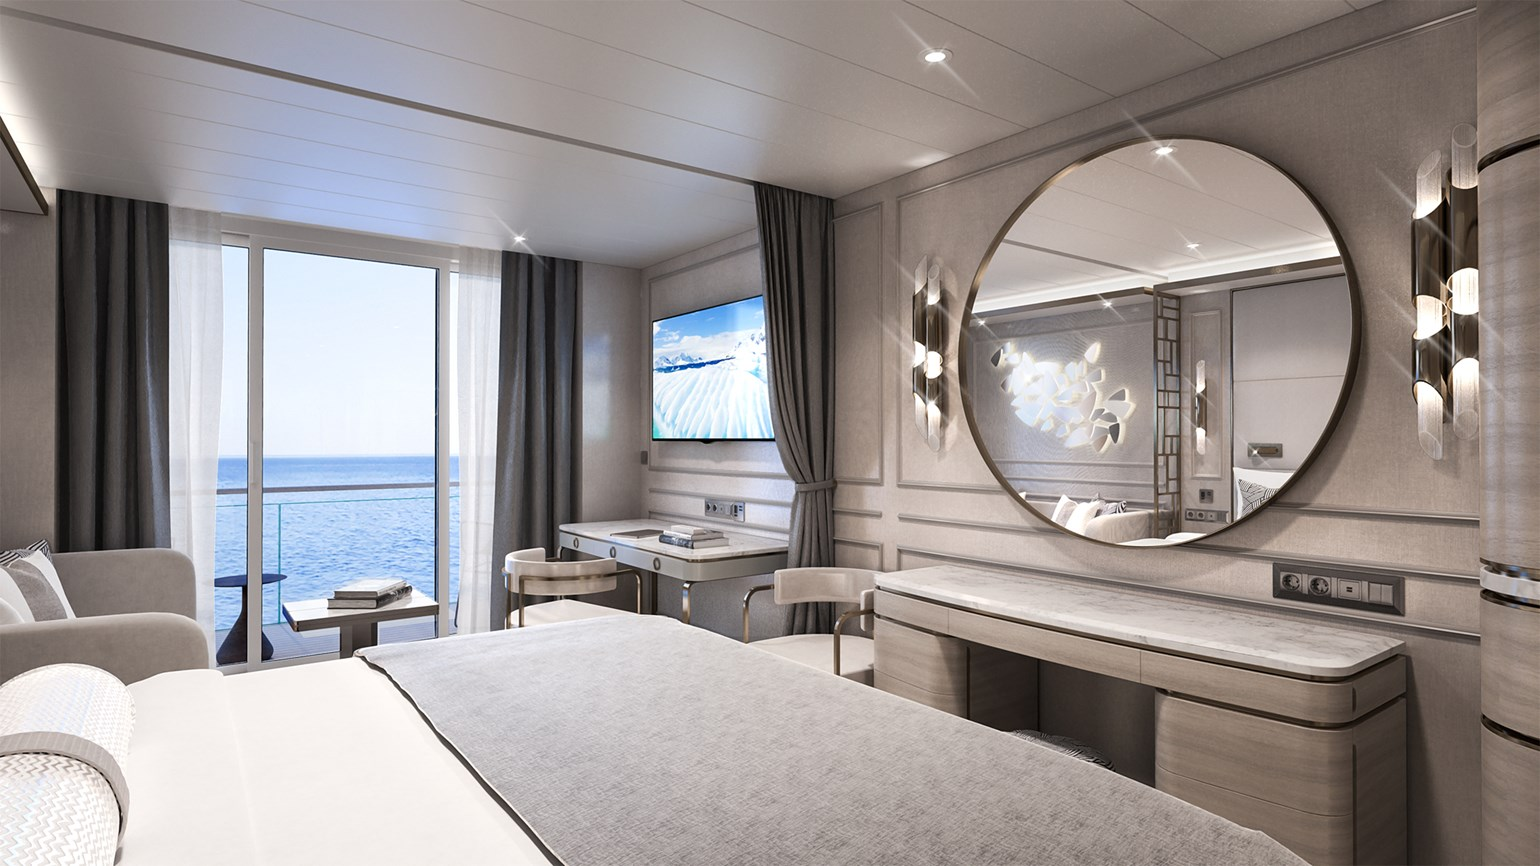 Crystal reveals details about accommodations on upcoming yacht